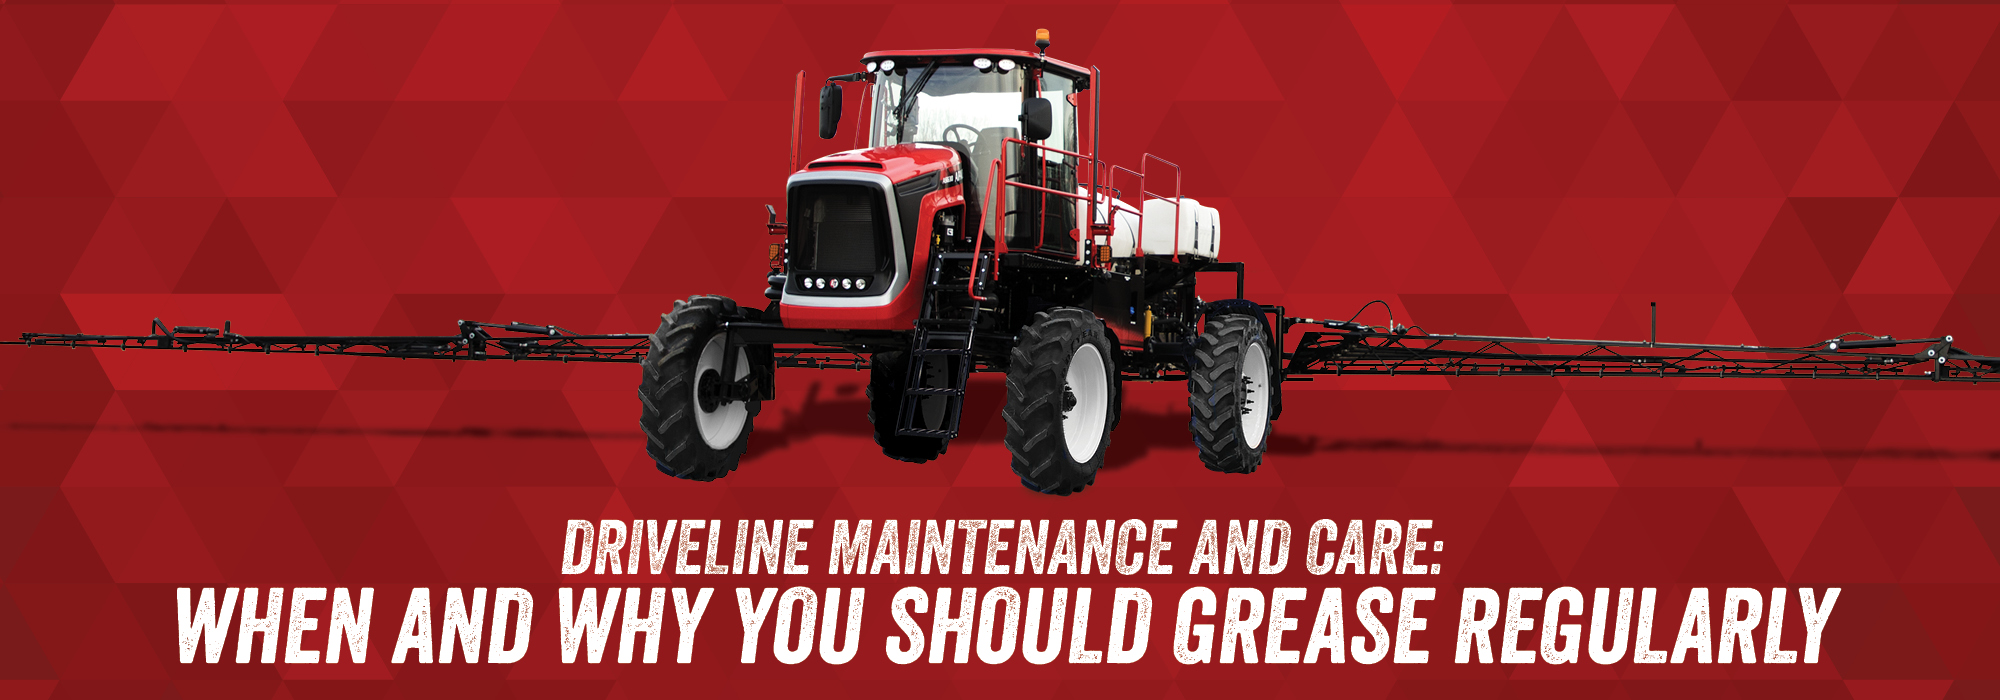 Blog Apache Sprayers Self Propelled Ag Best Method For Controlling How A Motor Stops Maximizes Machine Follow Regular Driveline Maintenance Schedules To Maximize Sprayer Performance